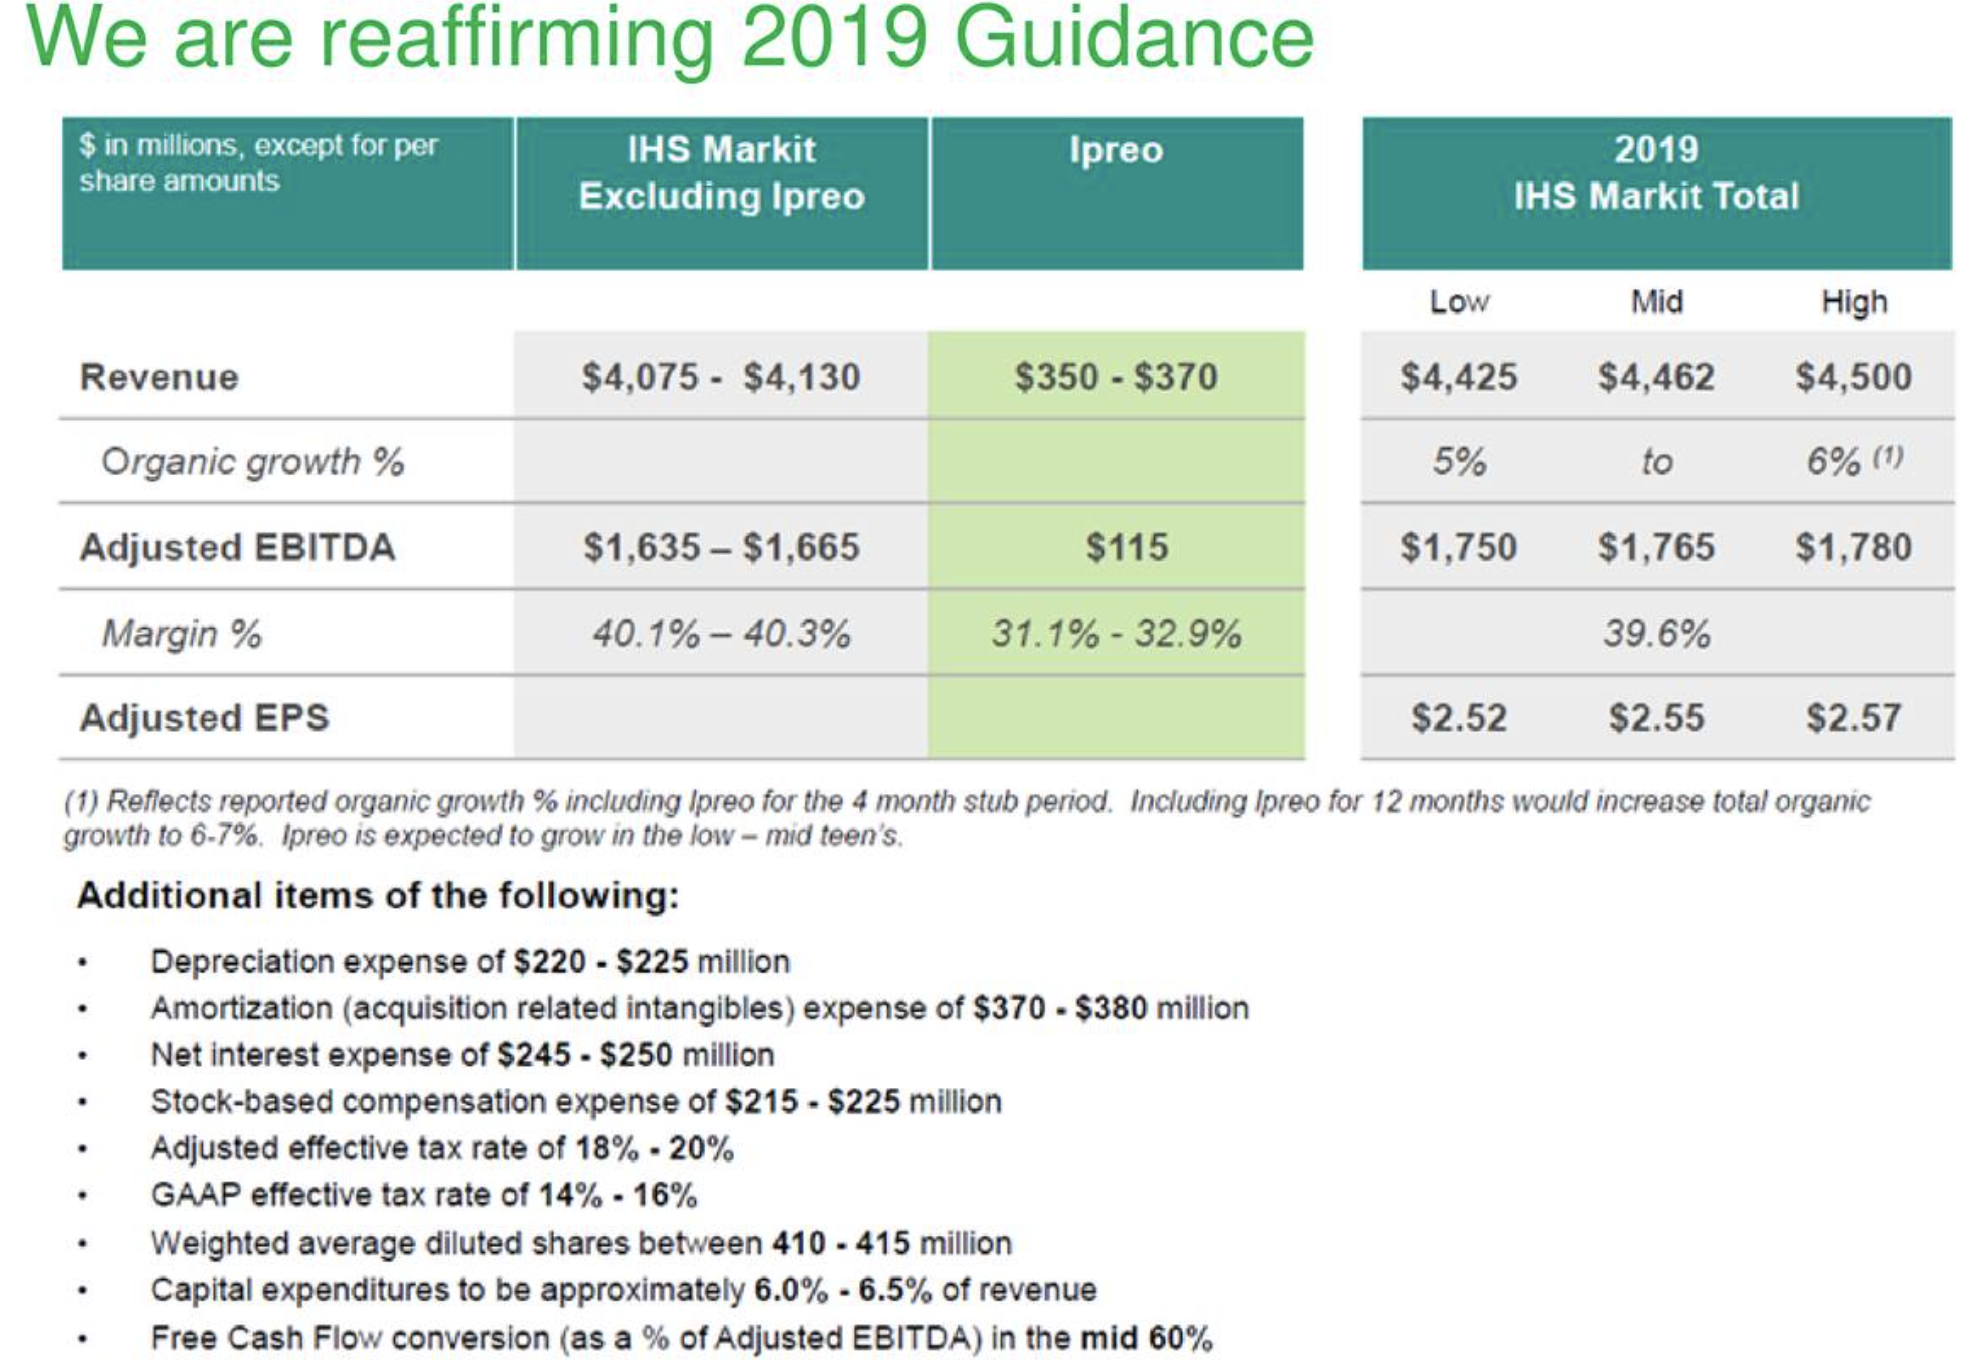 IHS Markit: Merger And Acquisition Drive Revenue Acceleration; Free Cash Flow Spikes